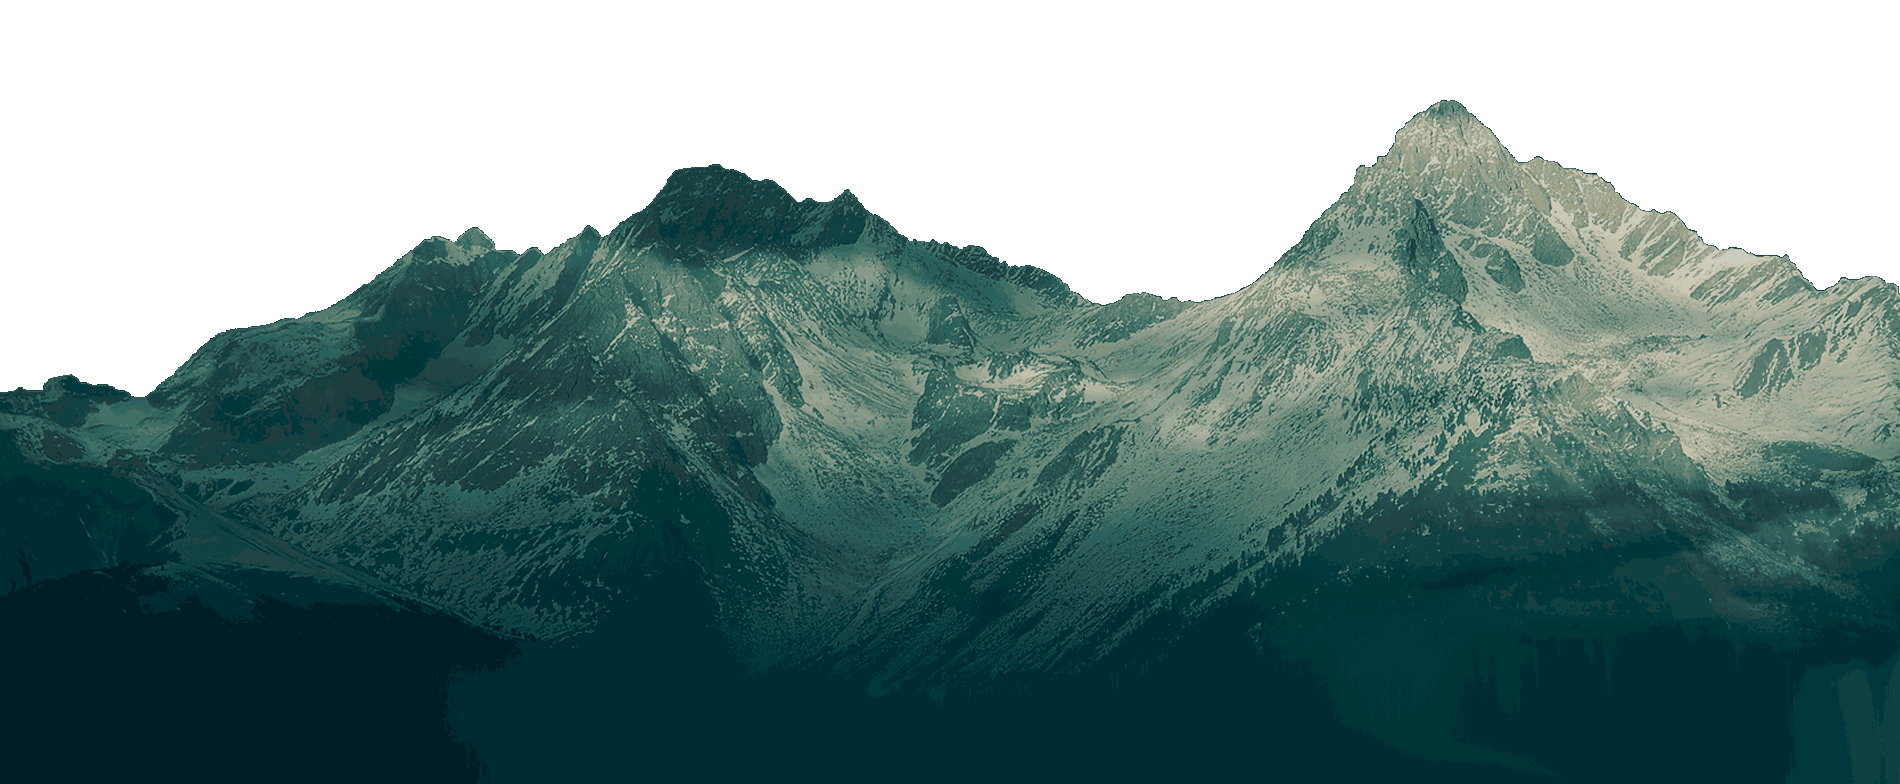 Mountains png. Images free download mountain